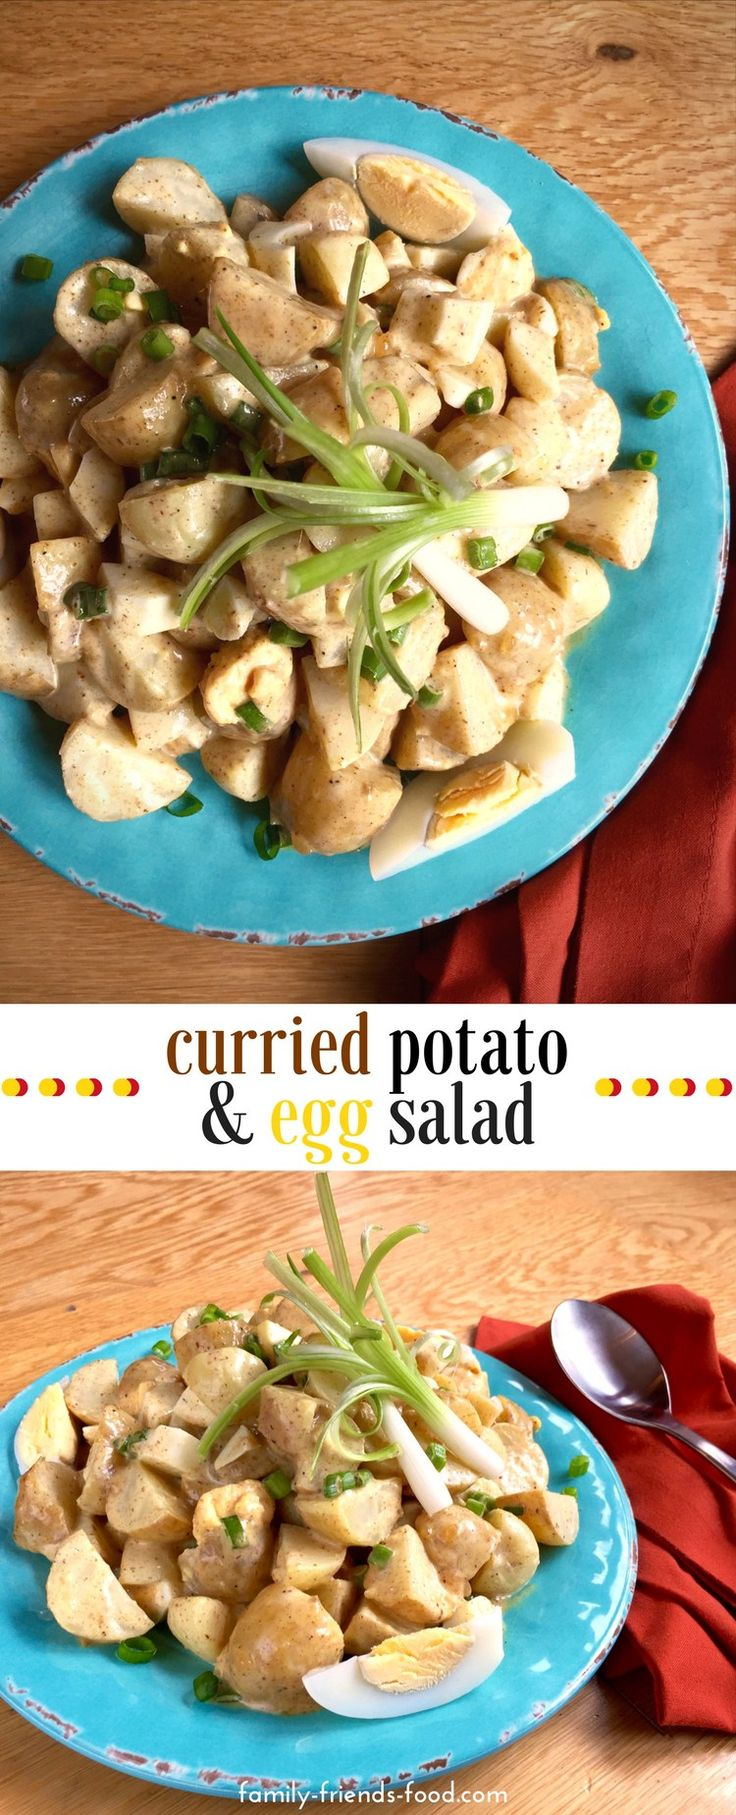 A sumptuous potato salad made with baby new potatoes in a creamy, sweet-tangy dressing, fragrant with Indian spices & mango chutney. A great summer side dish!